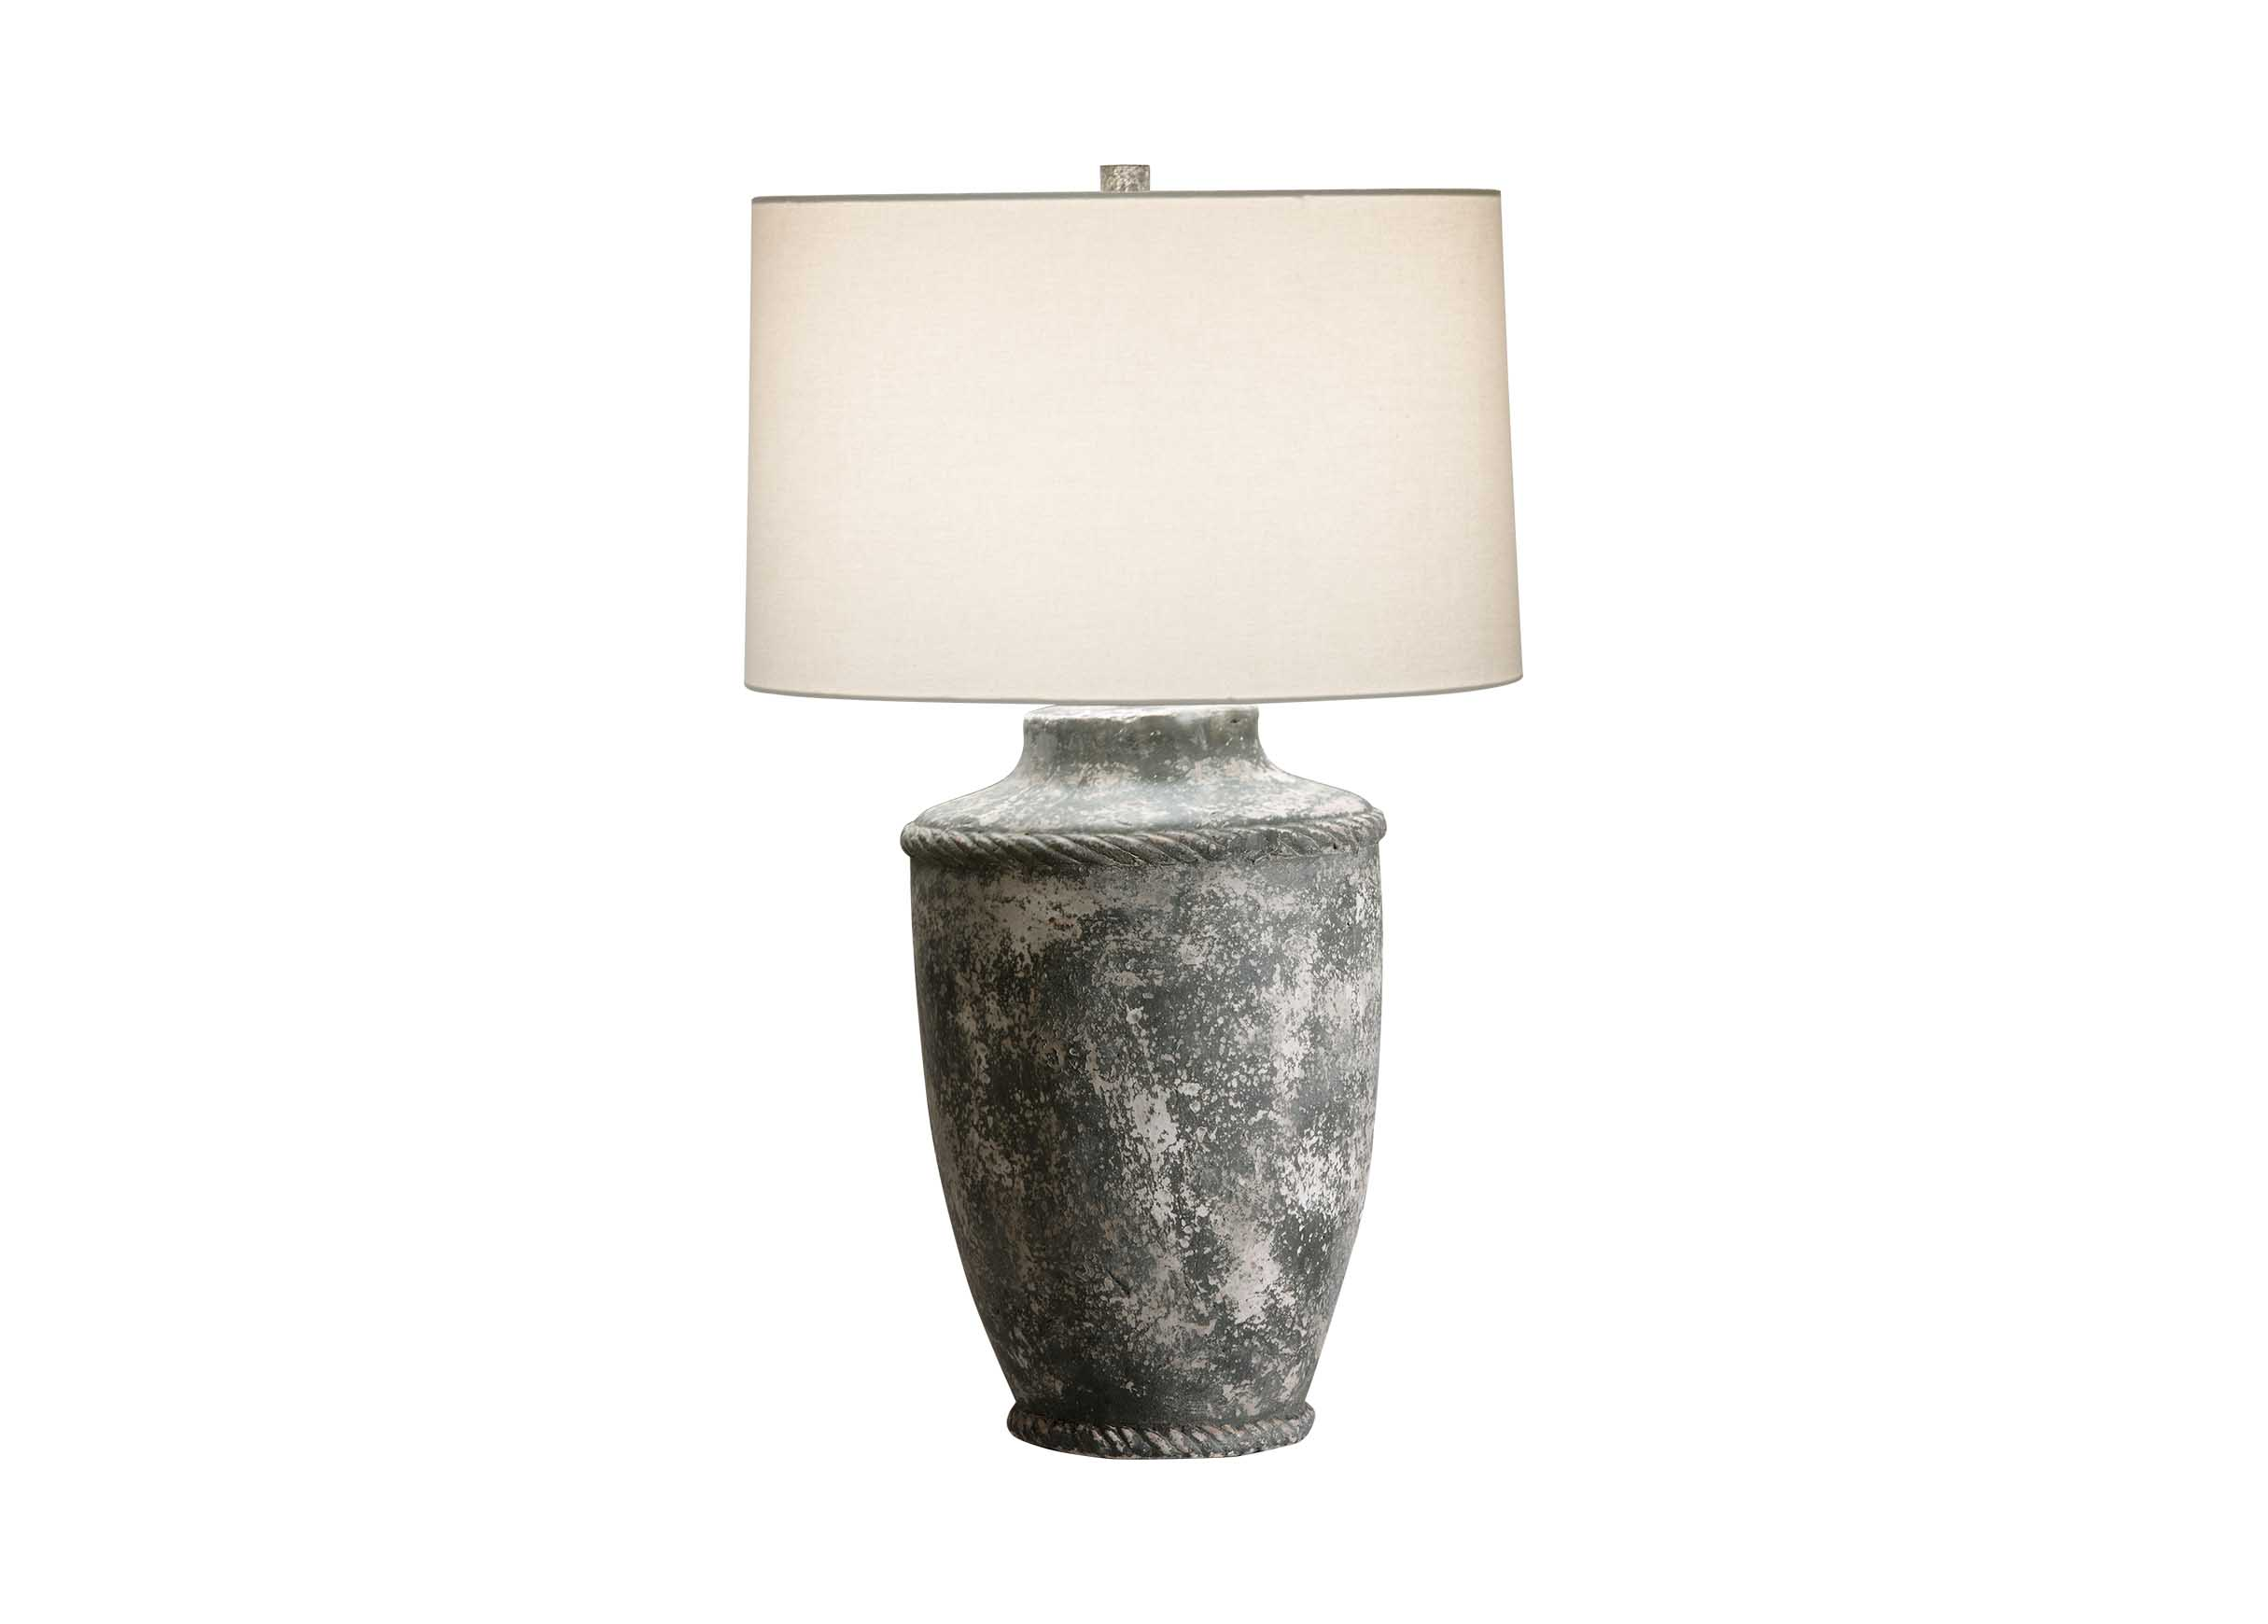 Palestro Table Lamp Table Lamps Ethan Allen